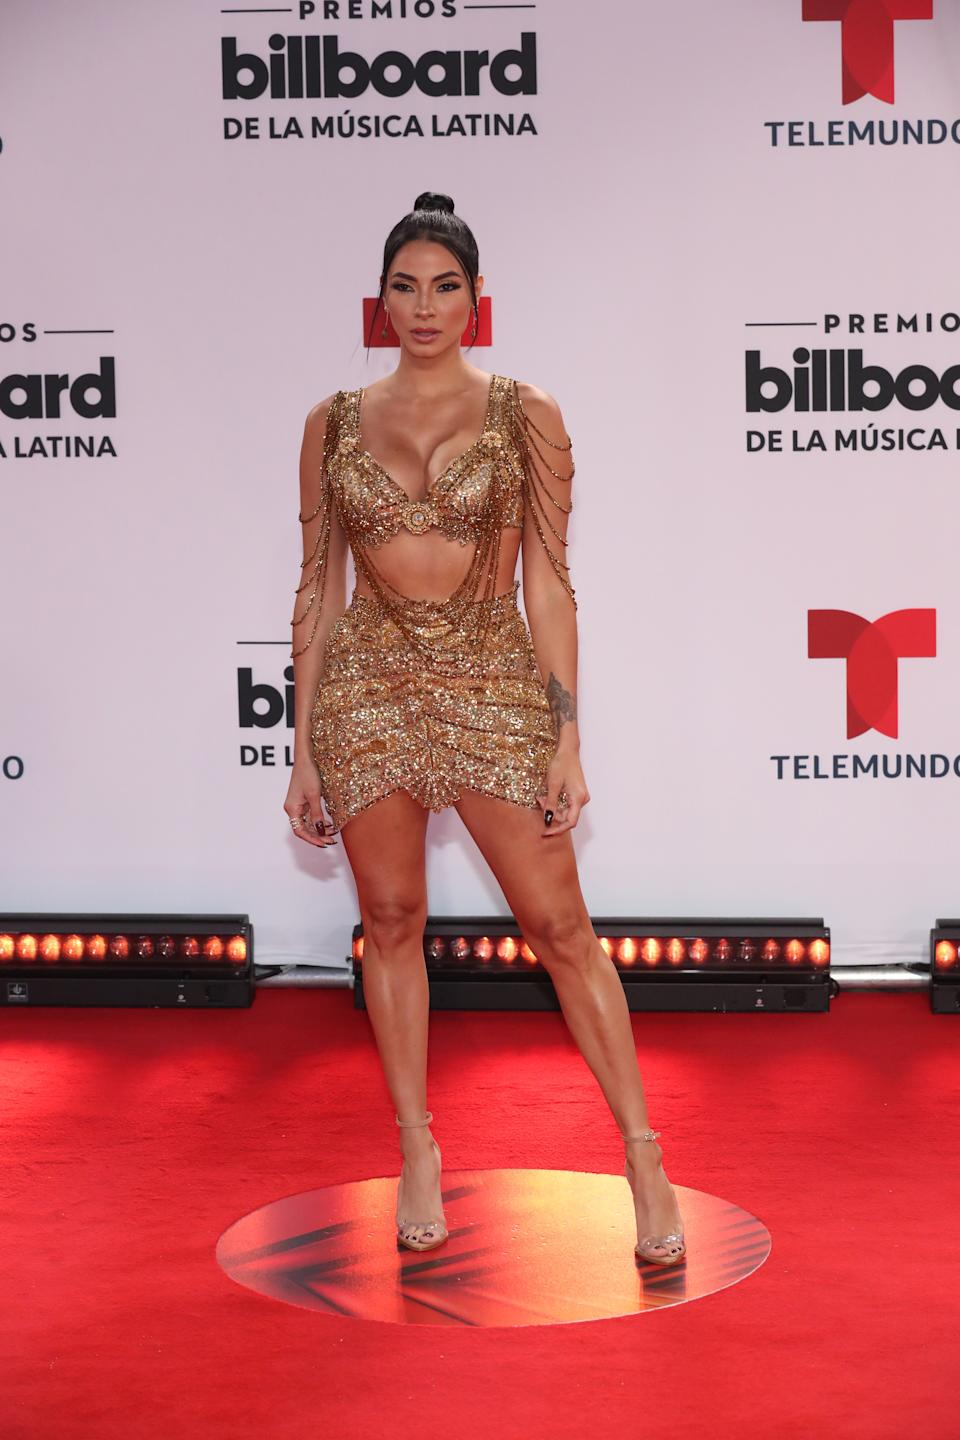 El look dorado de la <em>influencer </em>y estilista no tiene término medio: o lo amas o lo odias. (Foto: Aaron Davidson / NBCU Photo Bank via Getty Images)